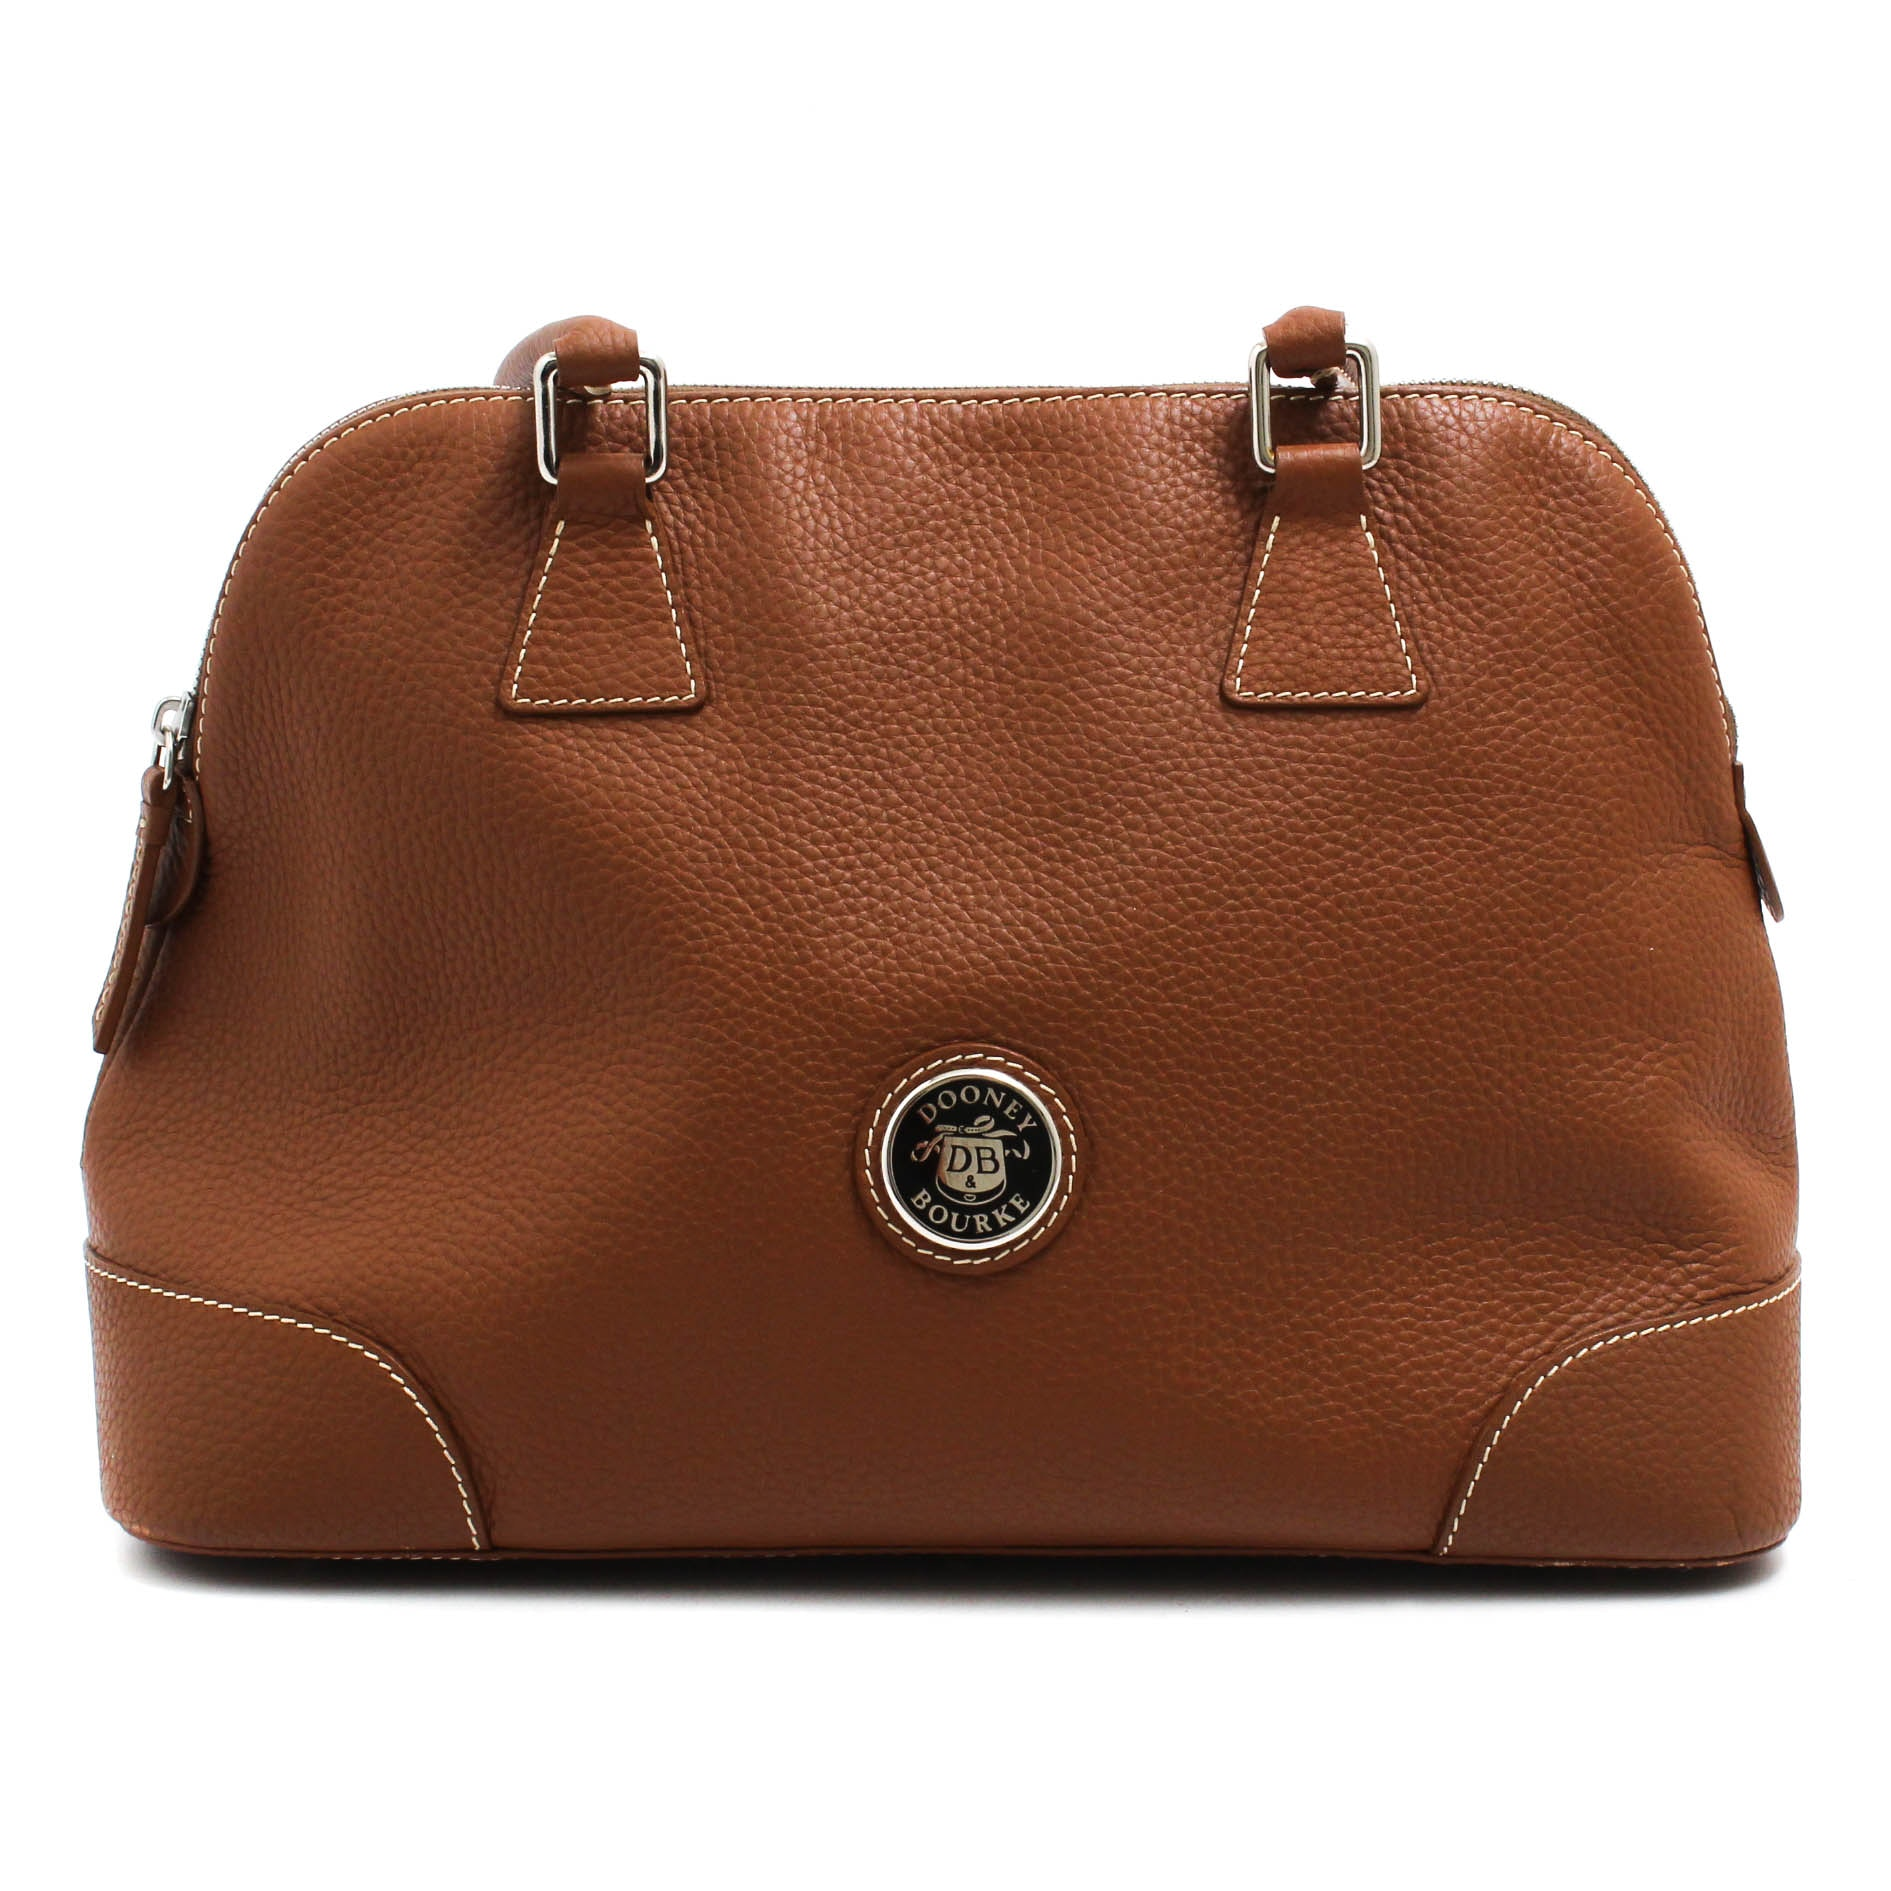 Dooney & Bourke Cognac Pebbled Leather Handbag